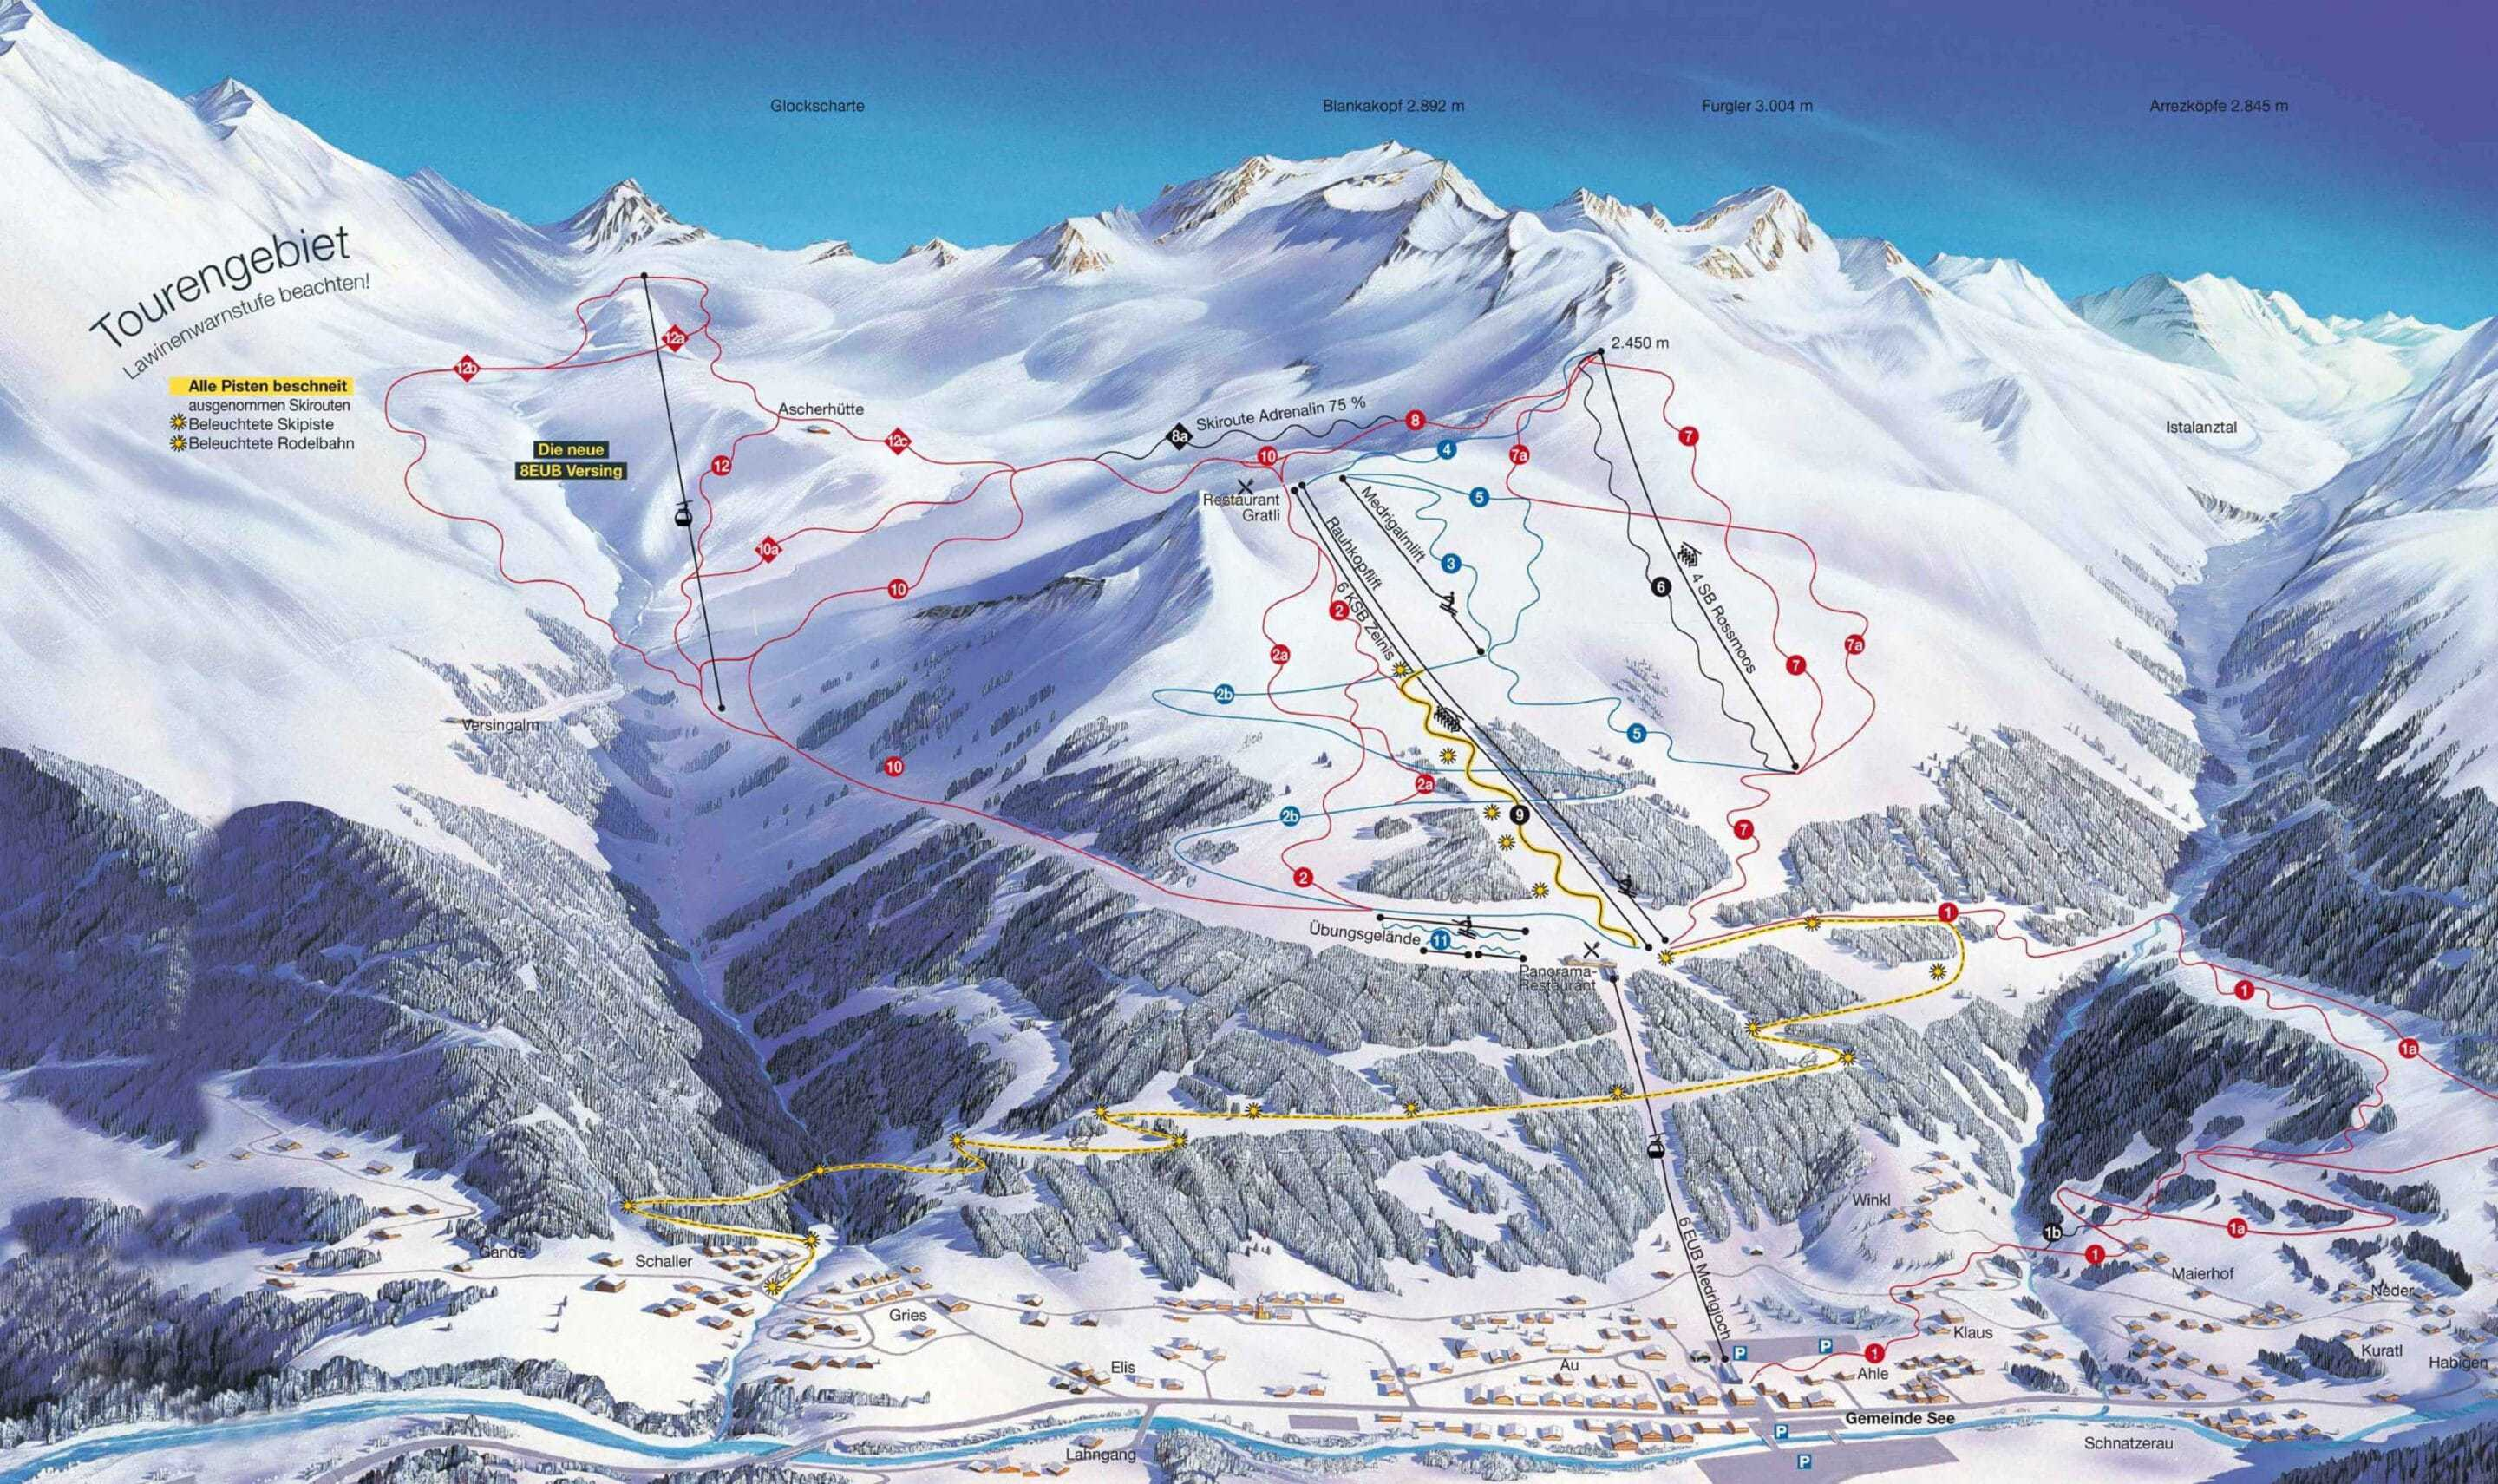 strig See Piste Map 2017 1 1 scaled